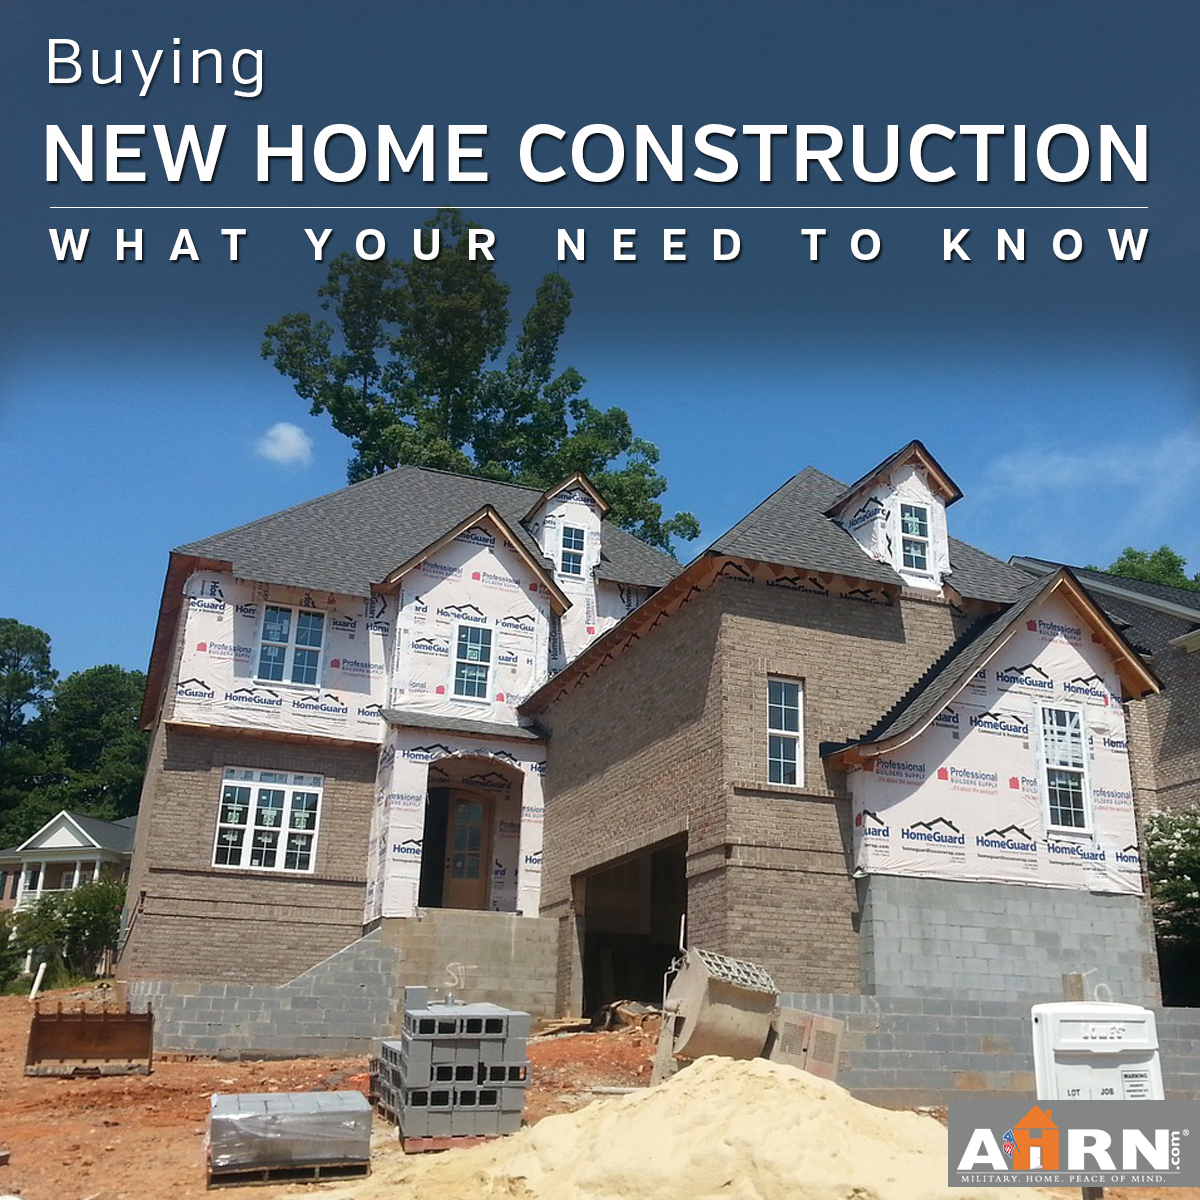 When Building A New Home What To Know what you need to know when buying new home construction | ahrn